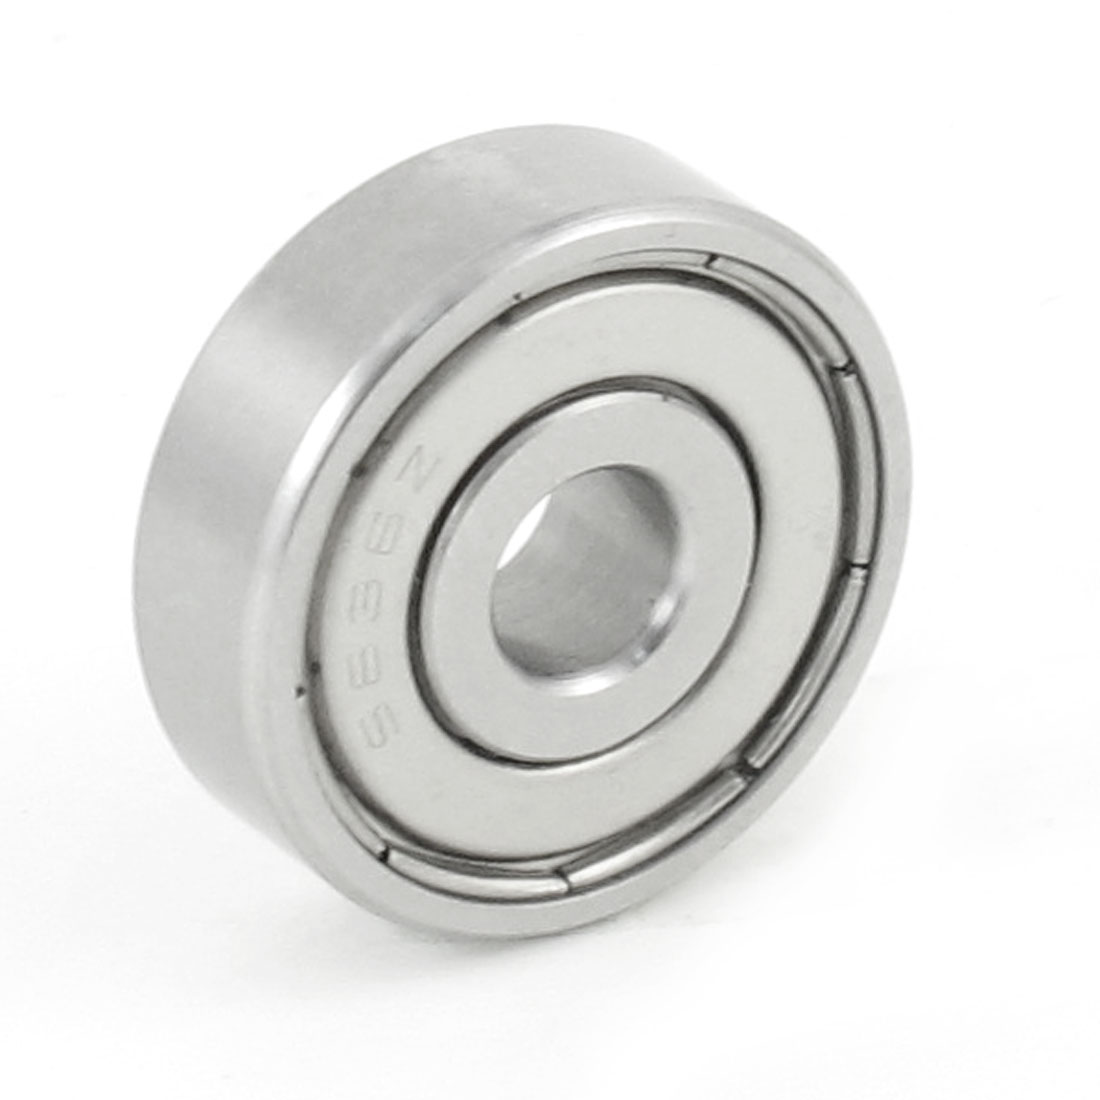 Stainless Steel 22mm x 6mm x 7mm Sealed Deep Groove Ball Bearing